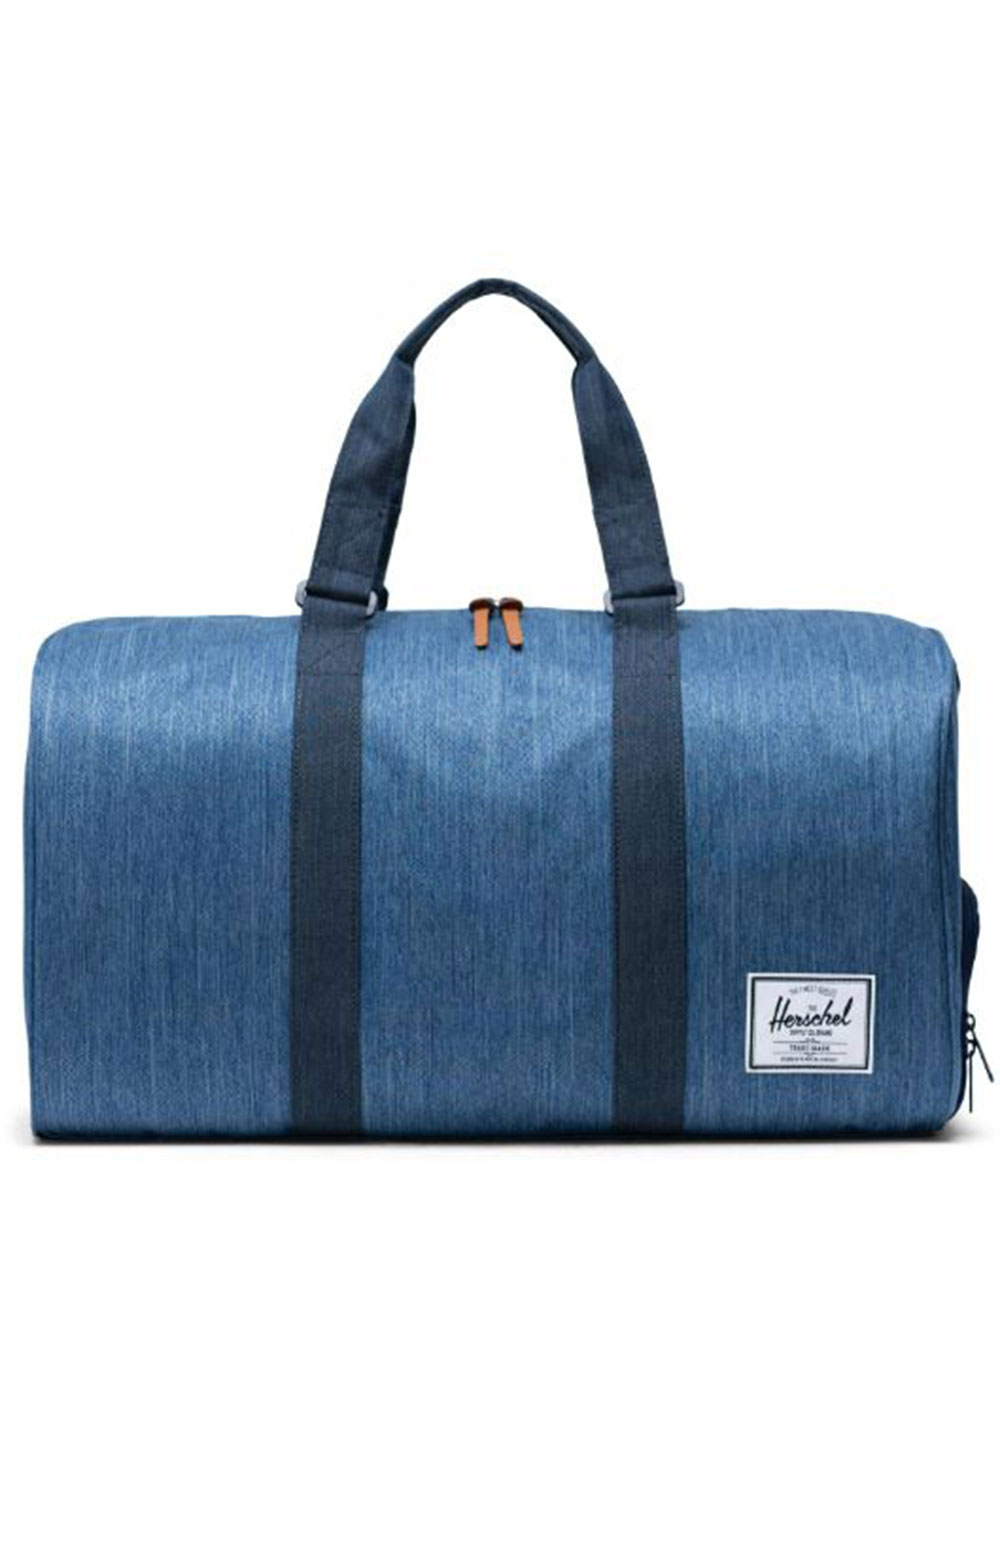 Novel Duffle Bag - Faded Denim/Indigo Denim